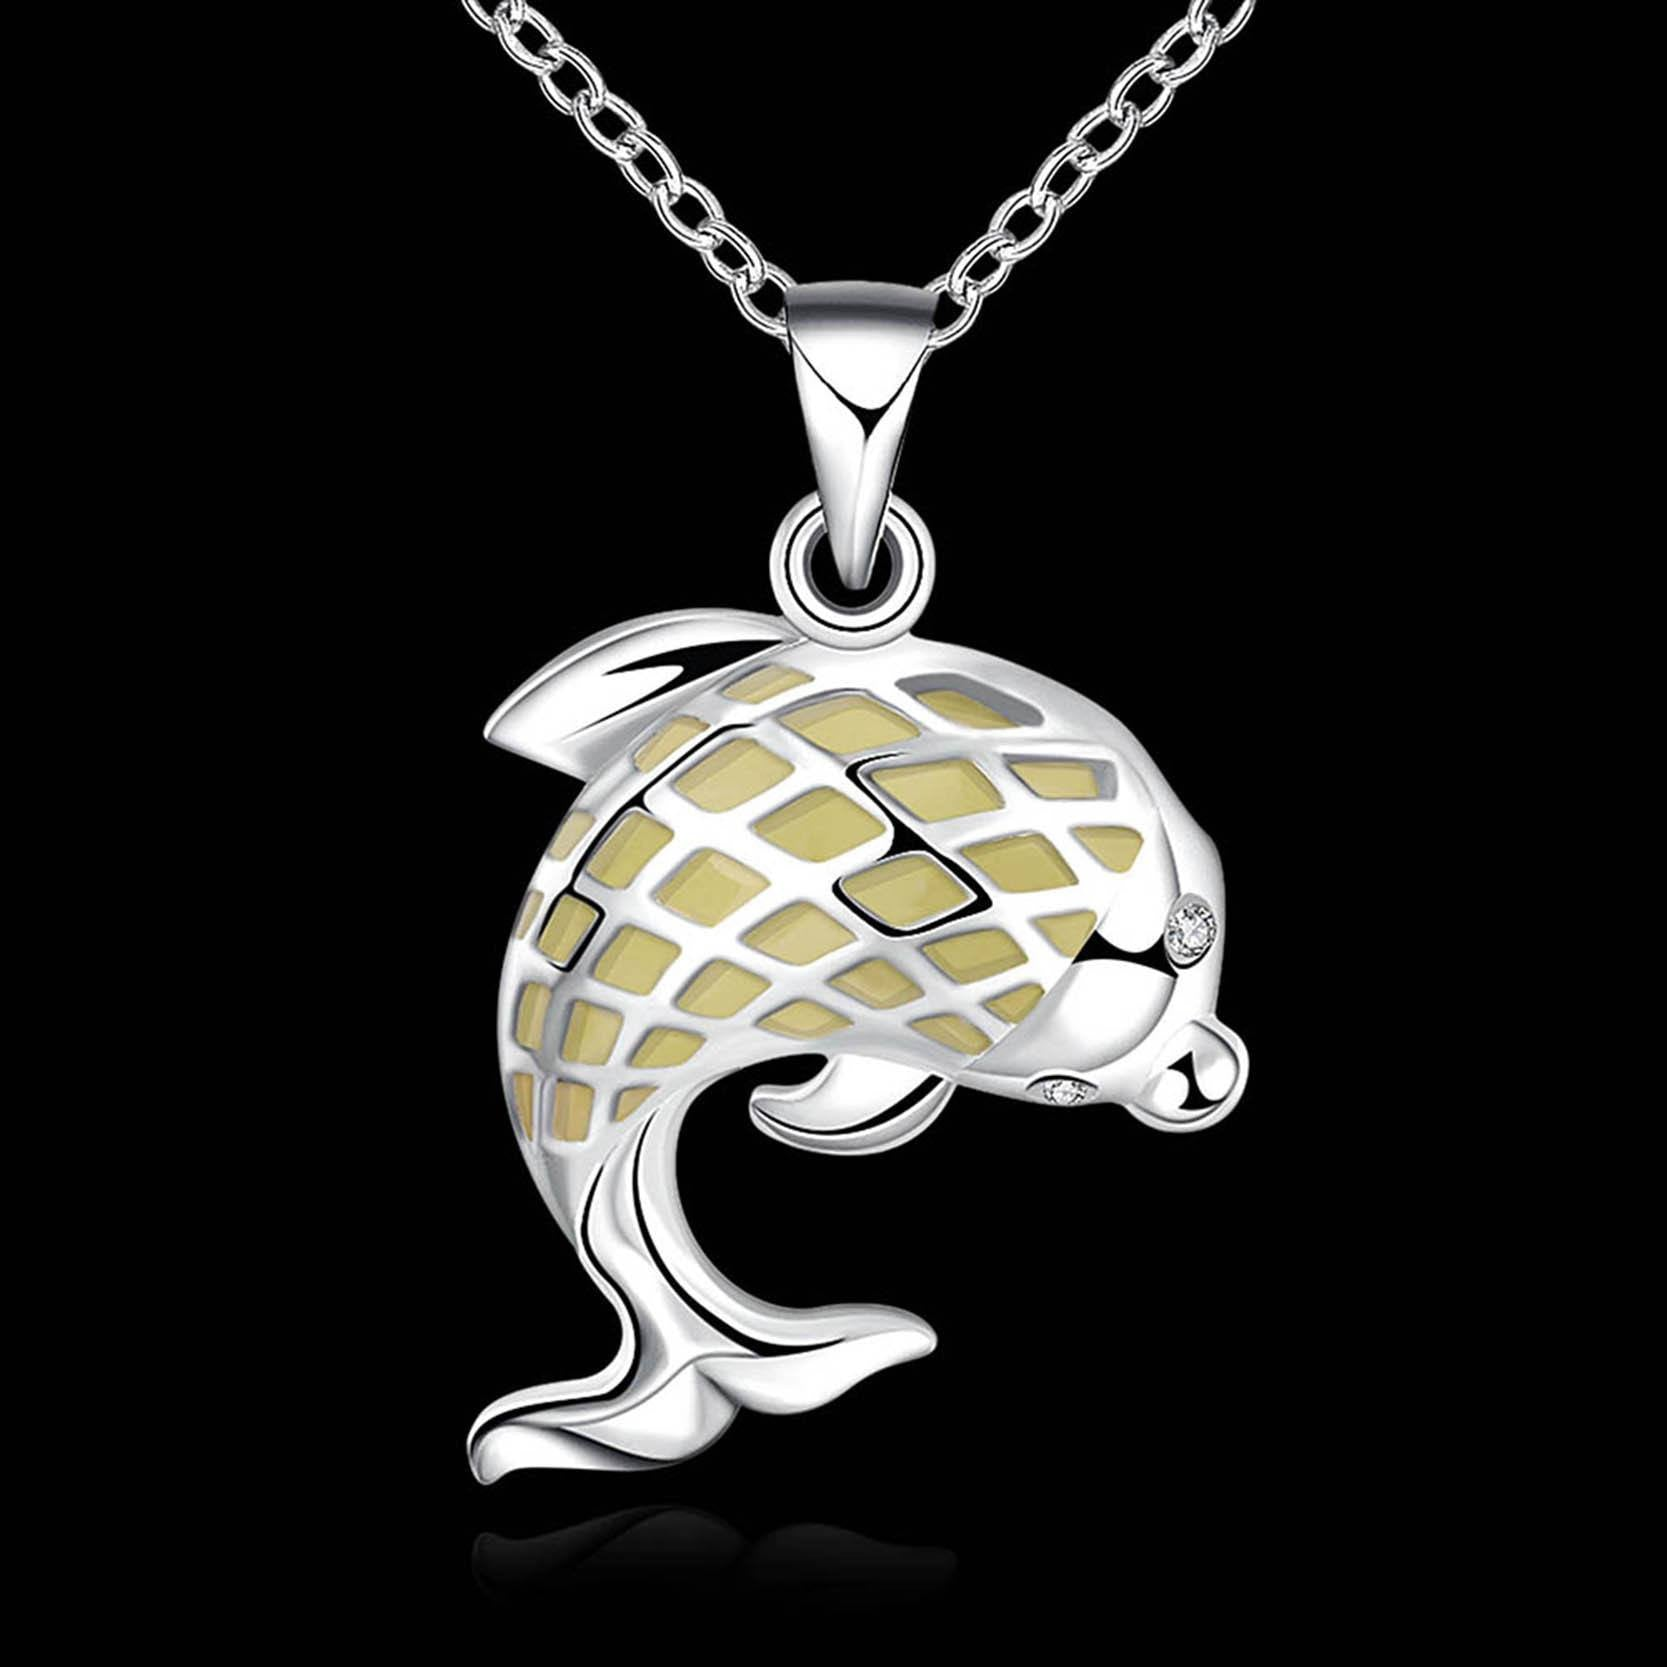 dolphin pendant products platinum necklace plated wikiwii gold